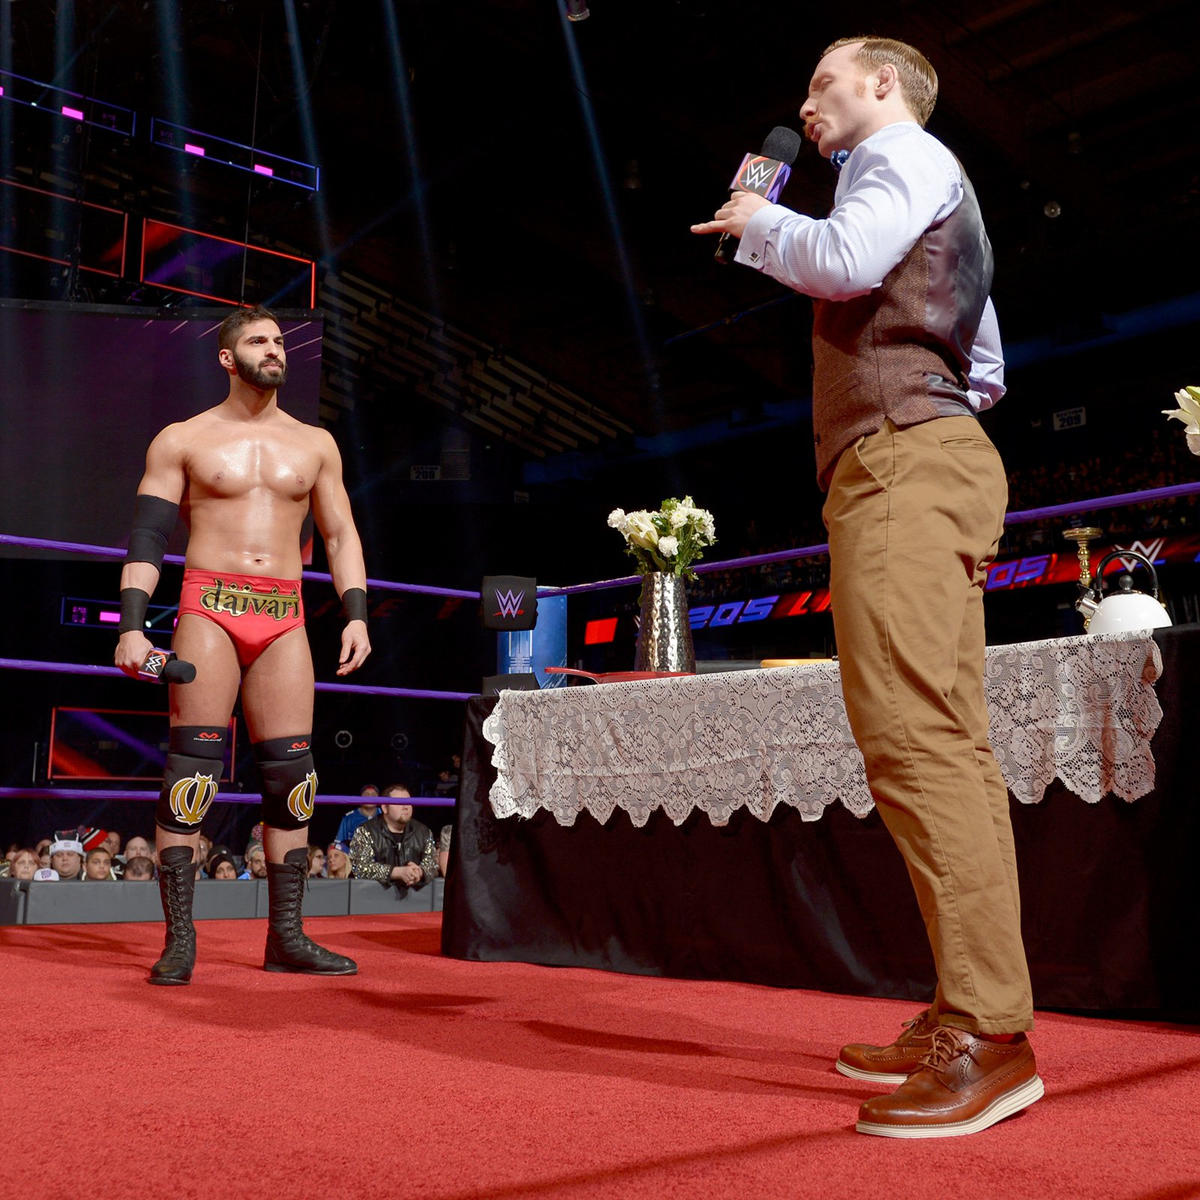 Jack Gallagher vs. Ariya Daivari – Gentlemen's Duel